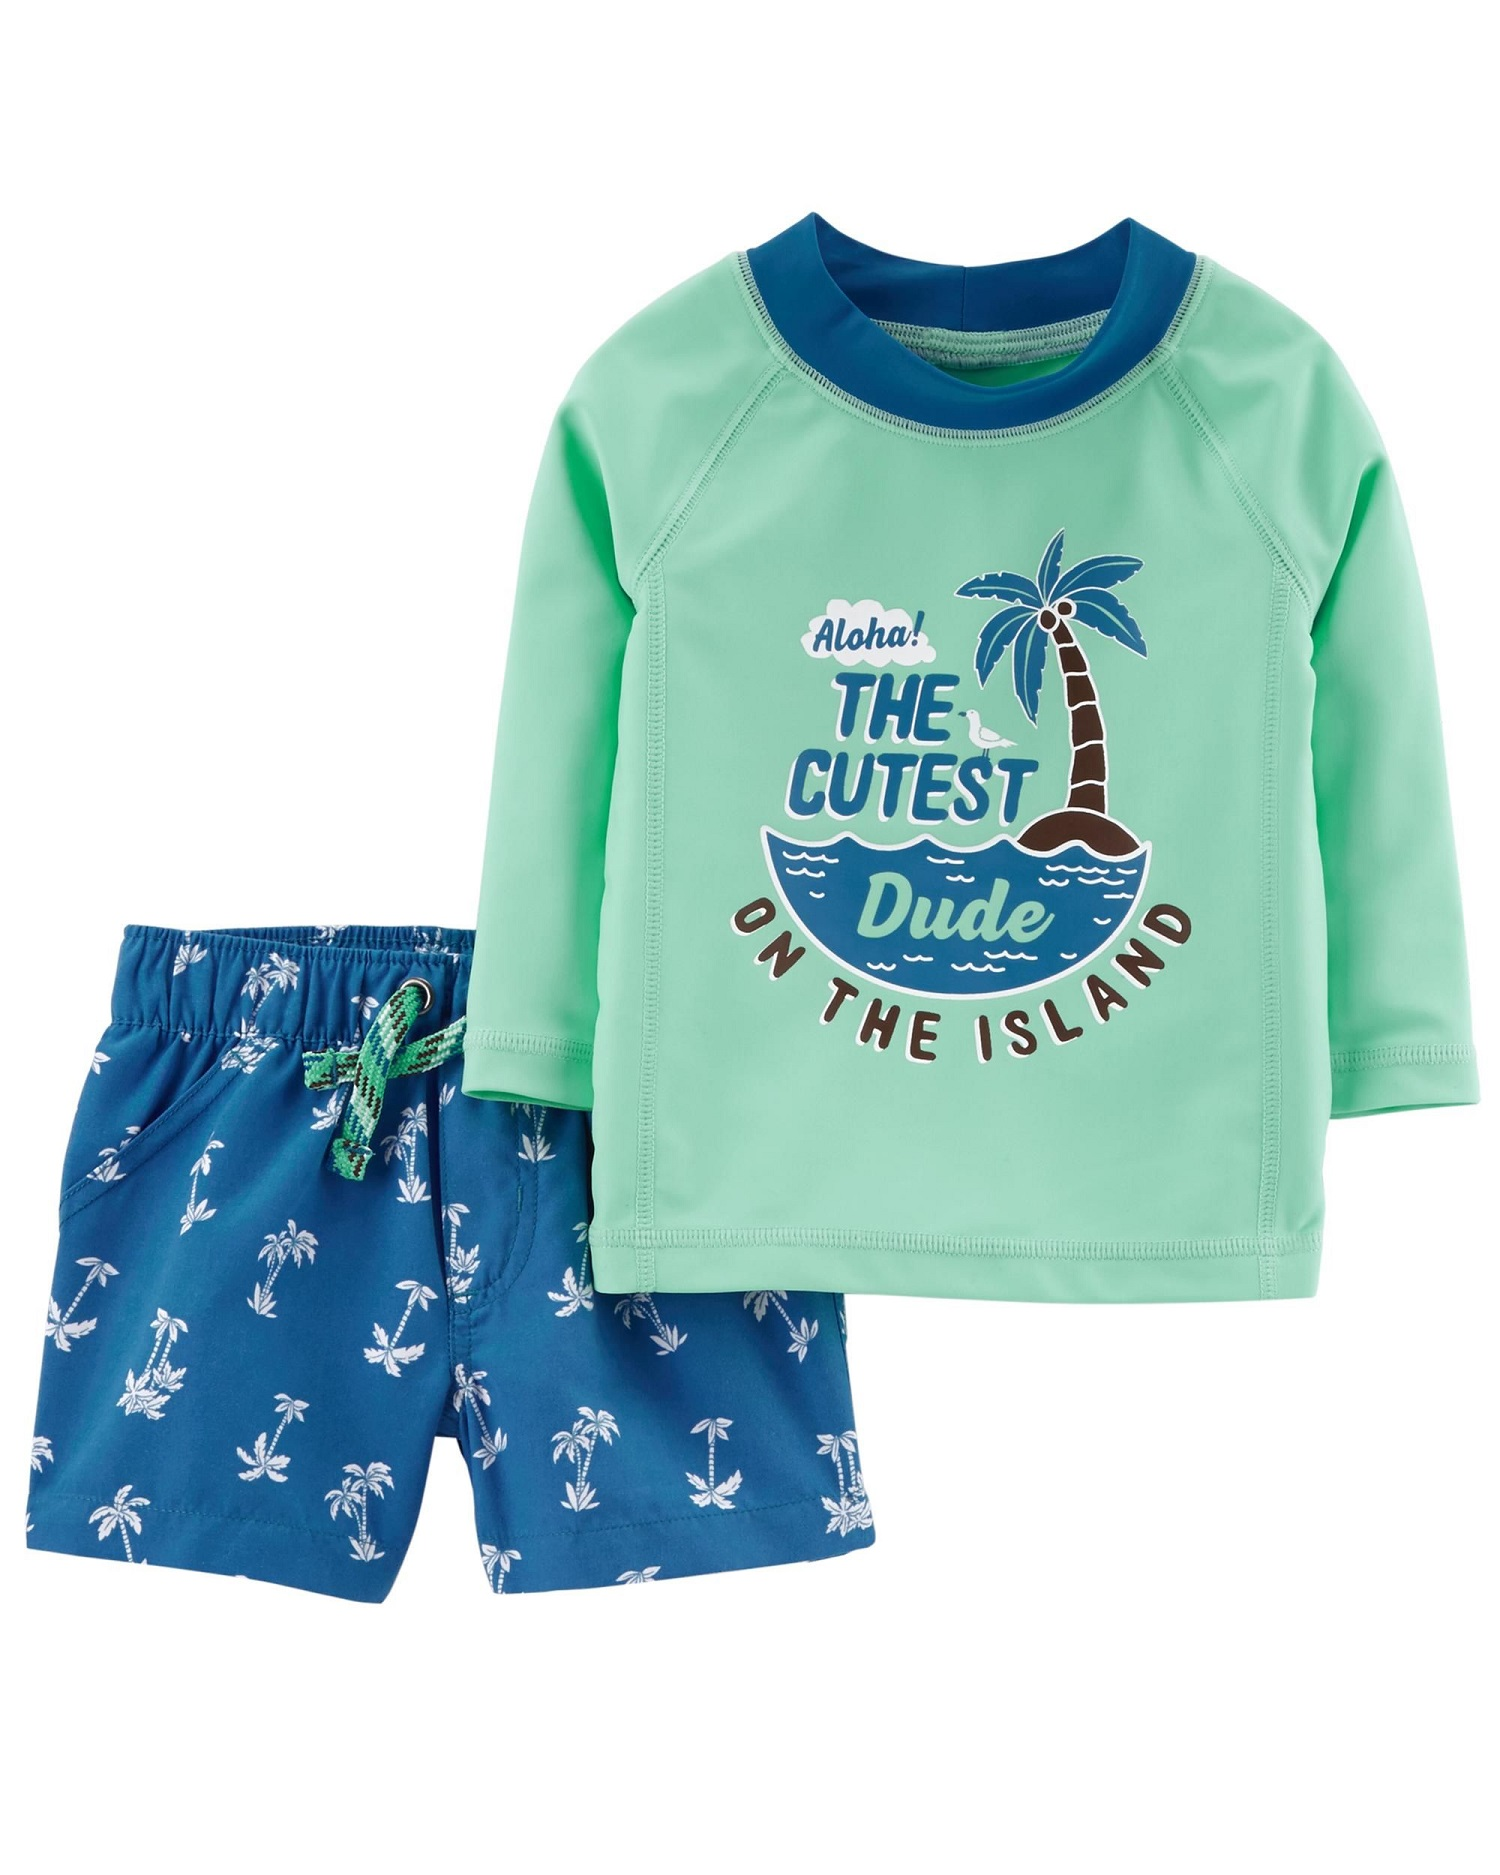 Carter's Baby Boys' 2-Piece Rashguard Set